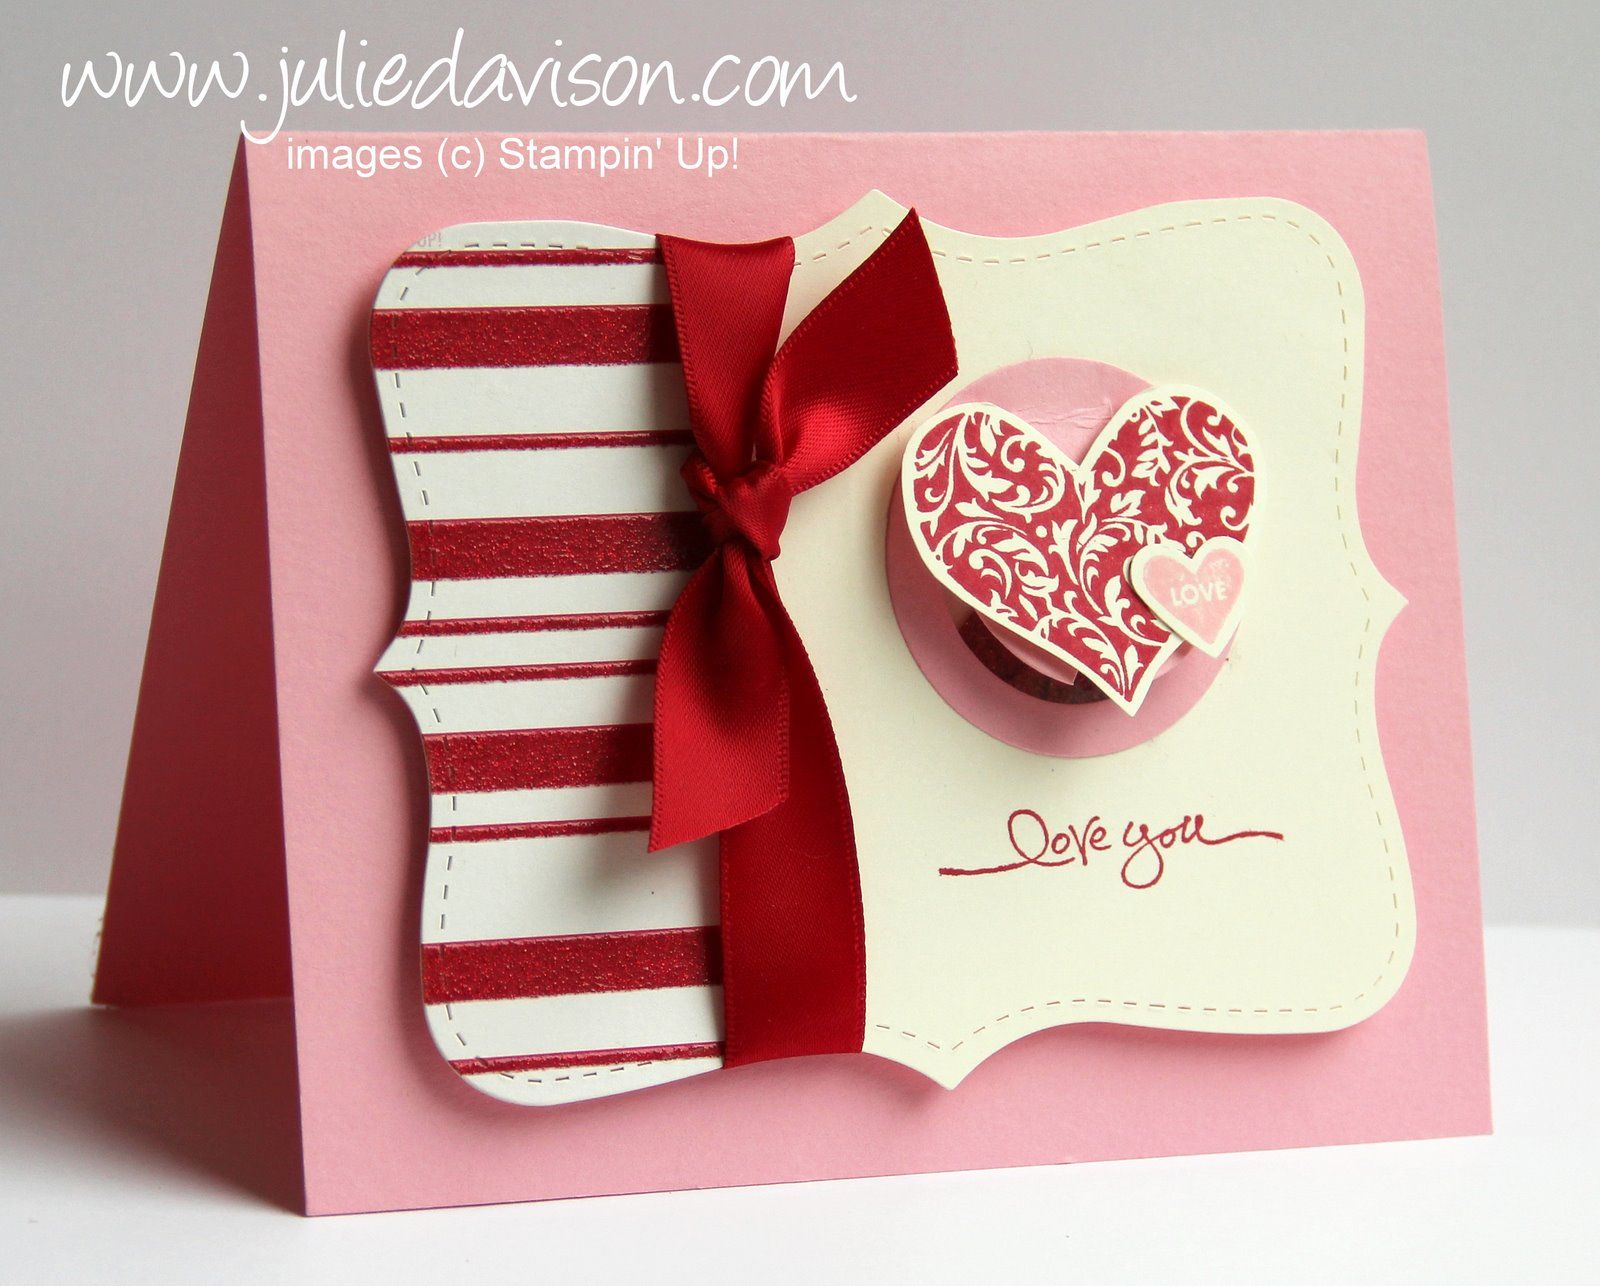 Stampin up valentine cards stampin up project ideas posted stampin up valentine cards stampin up project ideas posted daily kristyandbryce Image collections